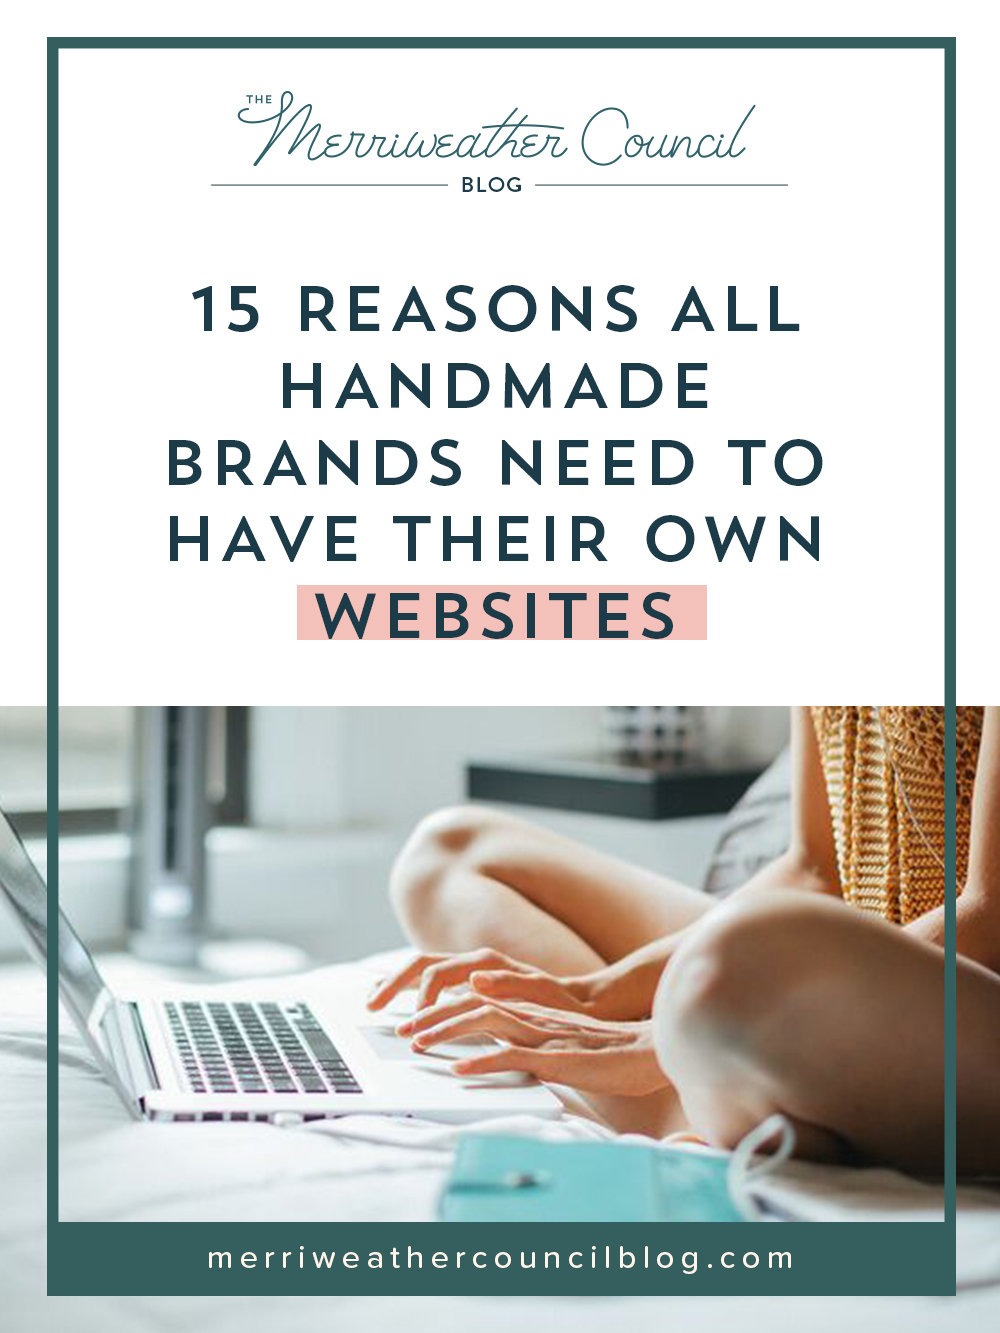 15 Reasons all Handmade Brands Need to Have Their Own Websites | the merriweather council blog